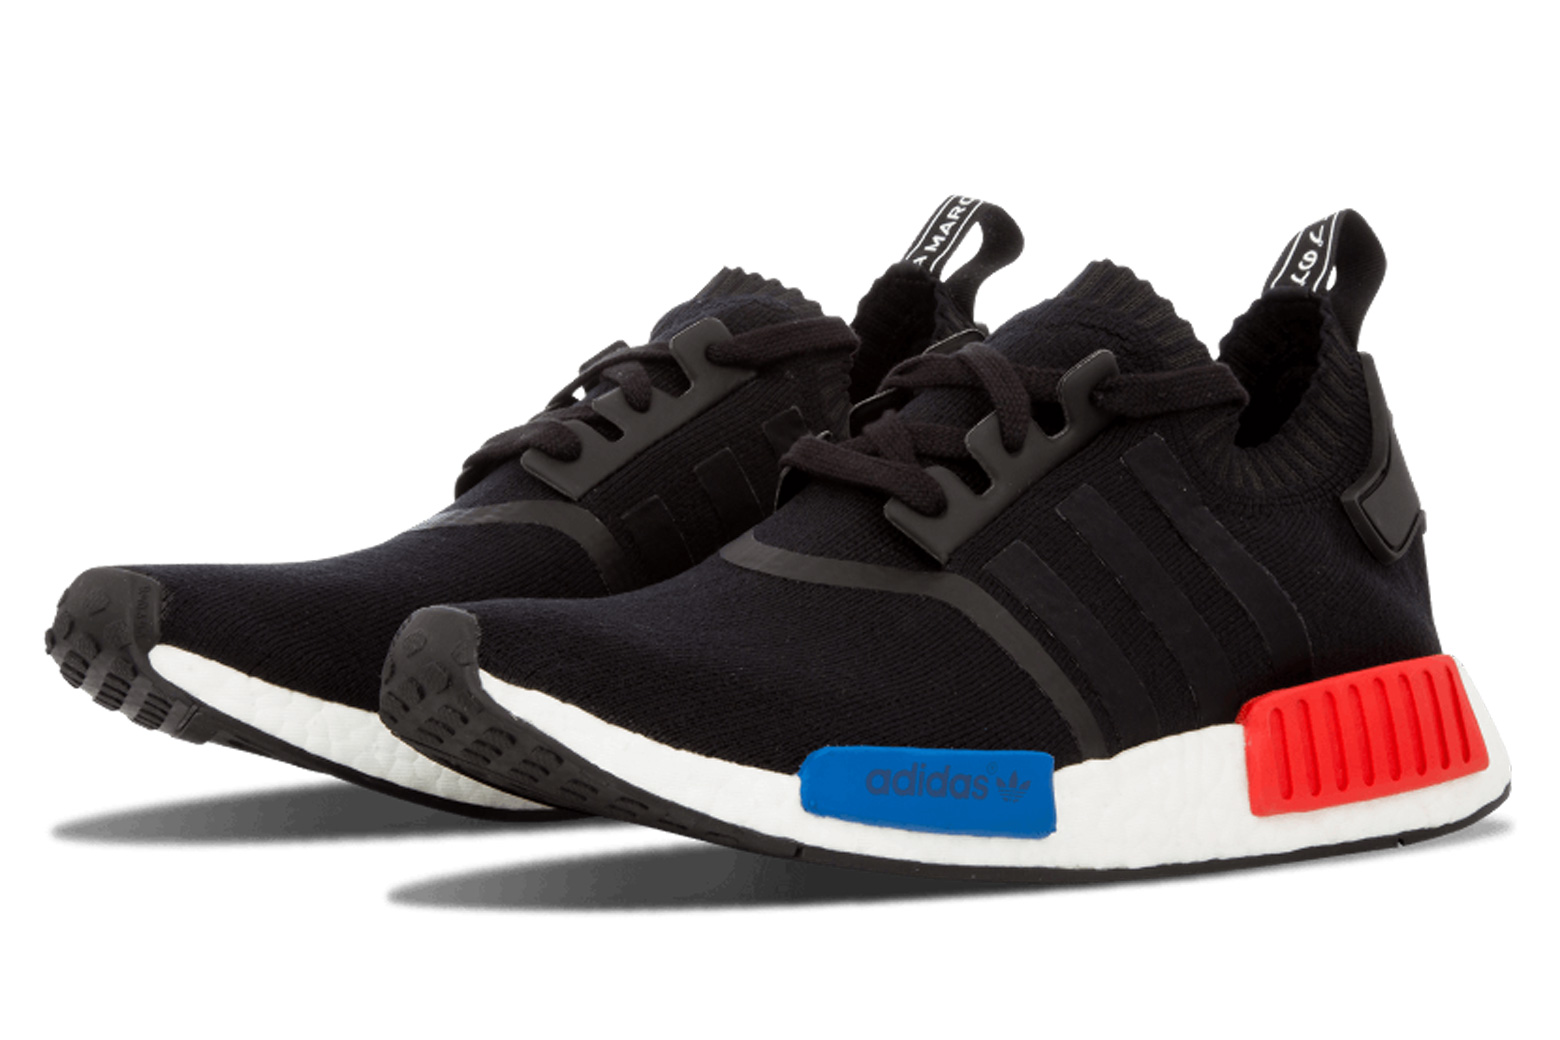 NMD R1 O.G. Makes a Comeback This Month + Where To Buy